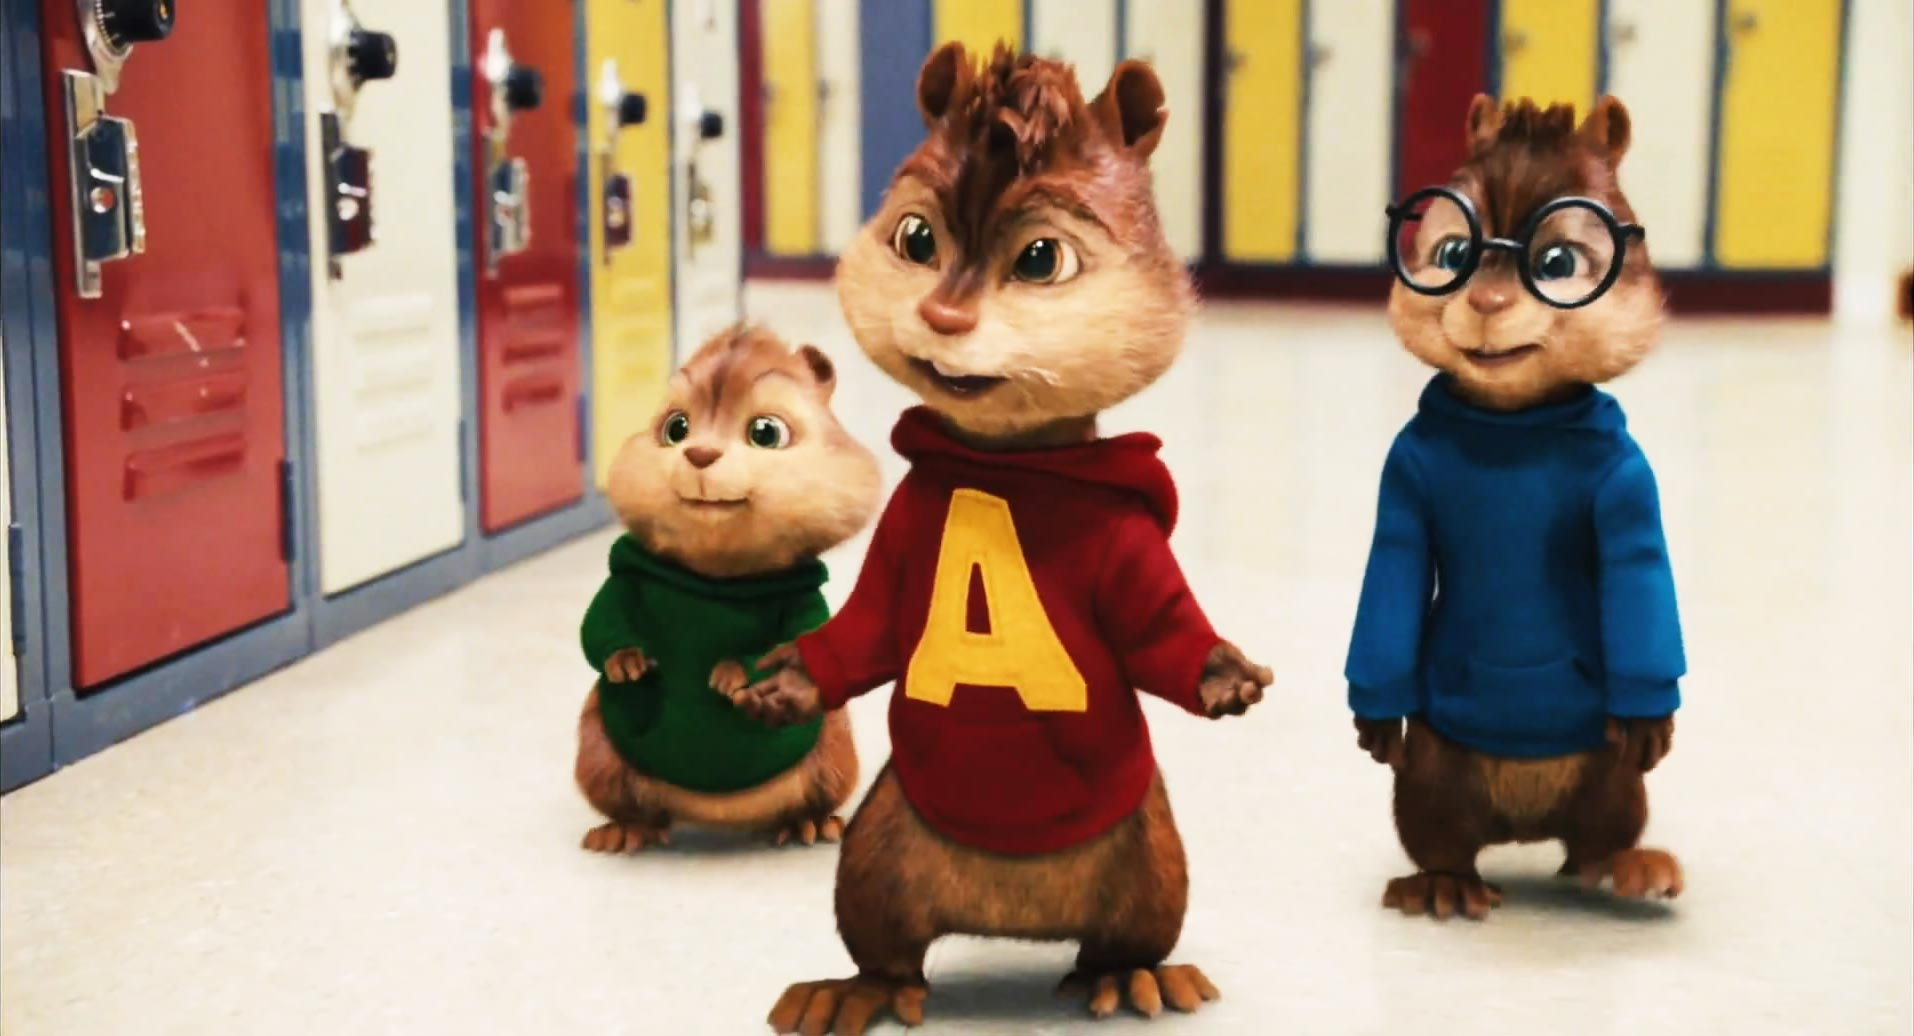 alvin and the chipmunks movie full movie online